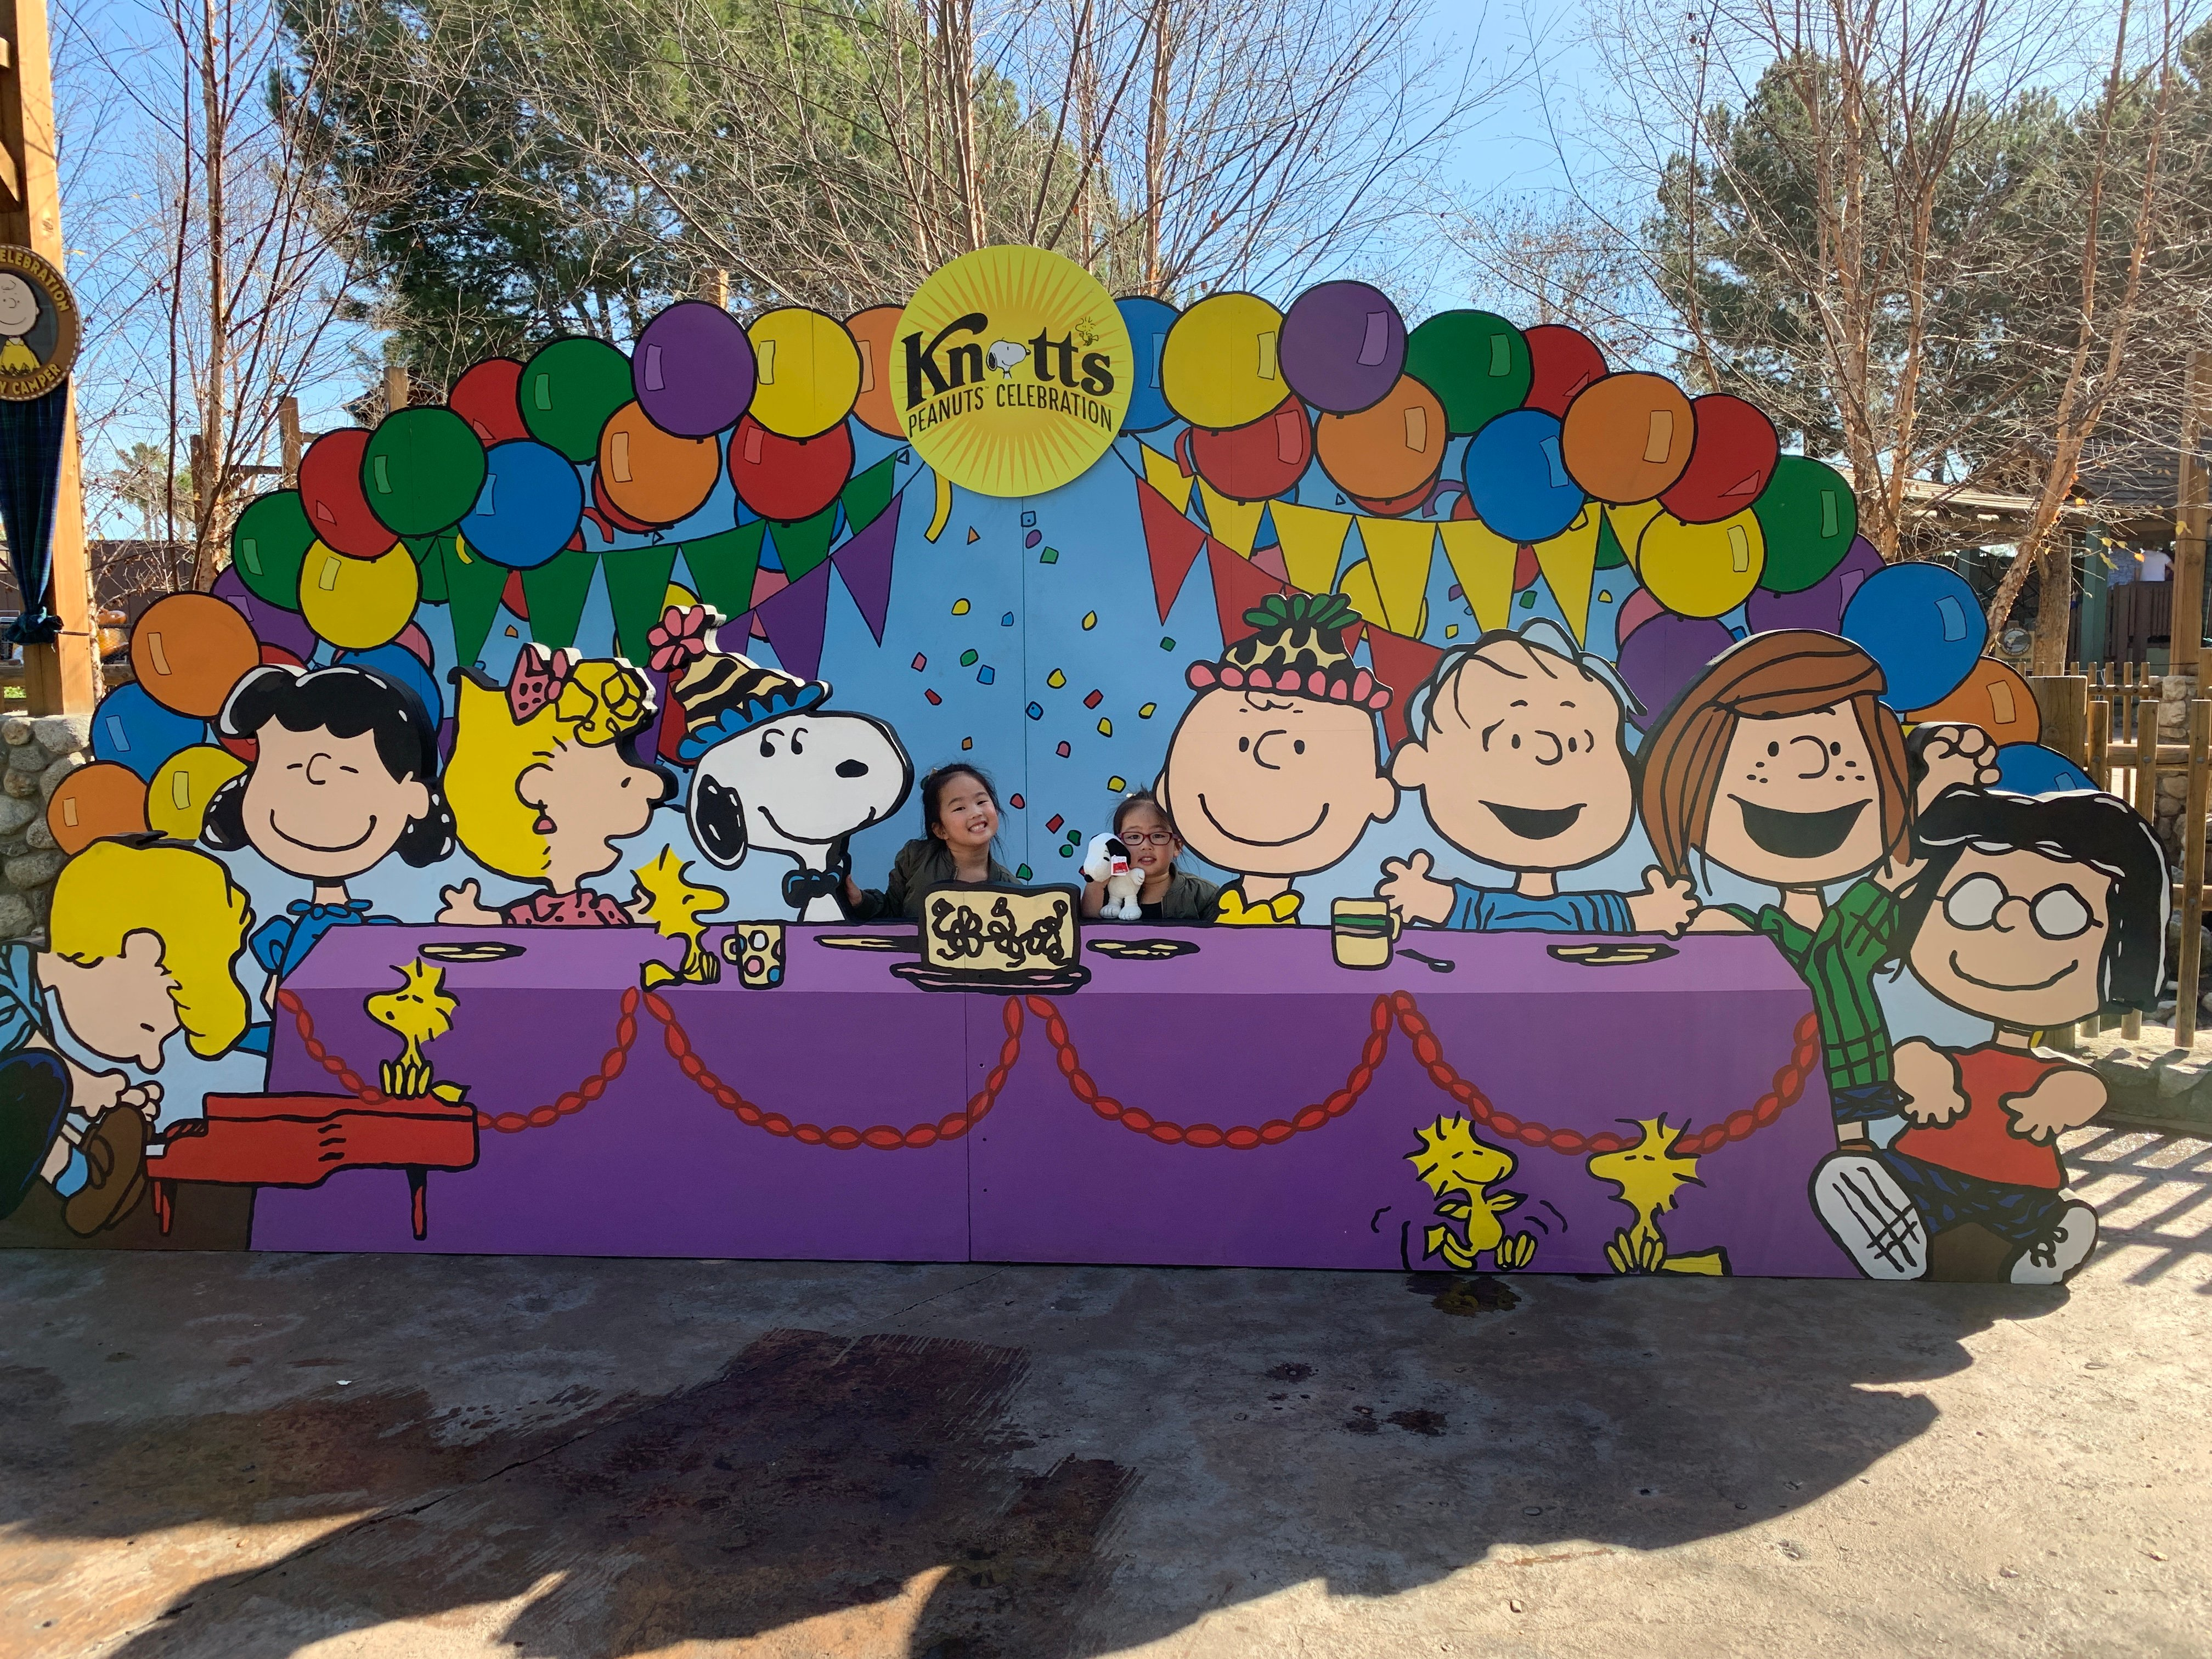 0e694d2717 Knott s Berry Farm will kick off its 2019 Seasons of Fun with the return of  the newly expanded Knott s PEANUTS Celebration